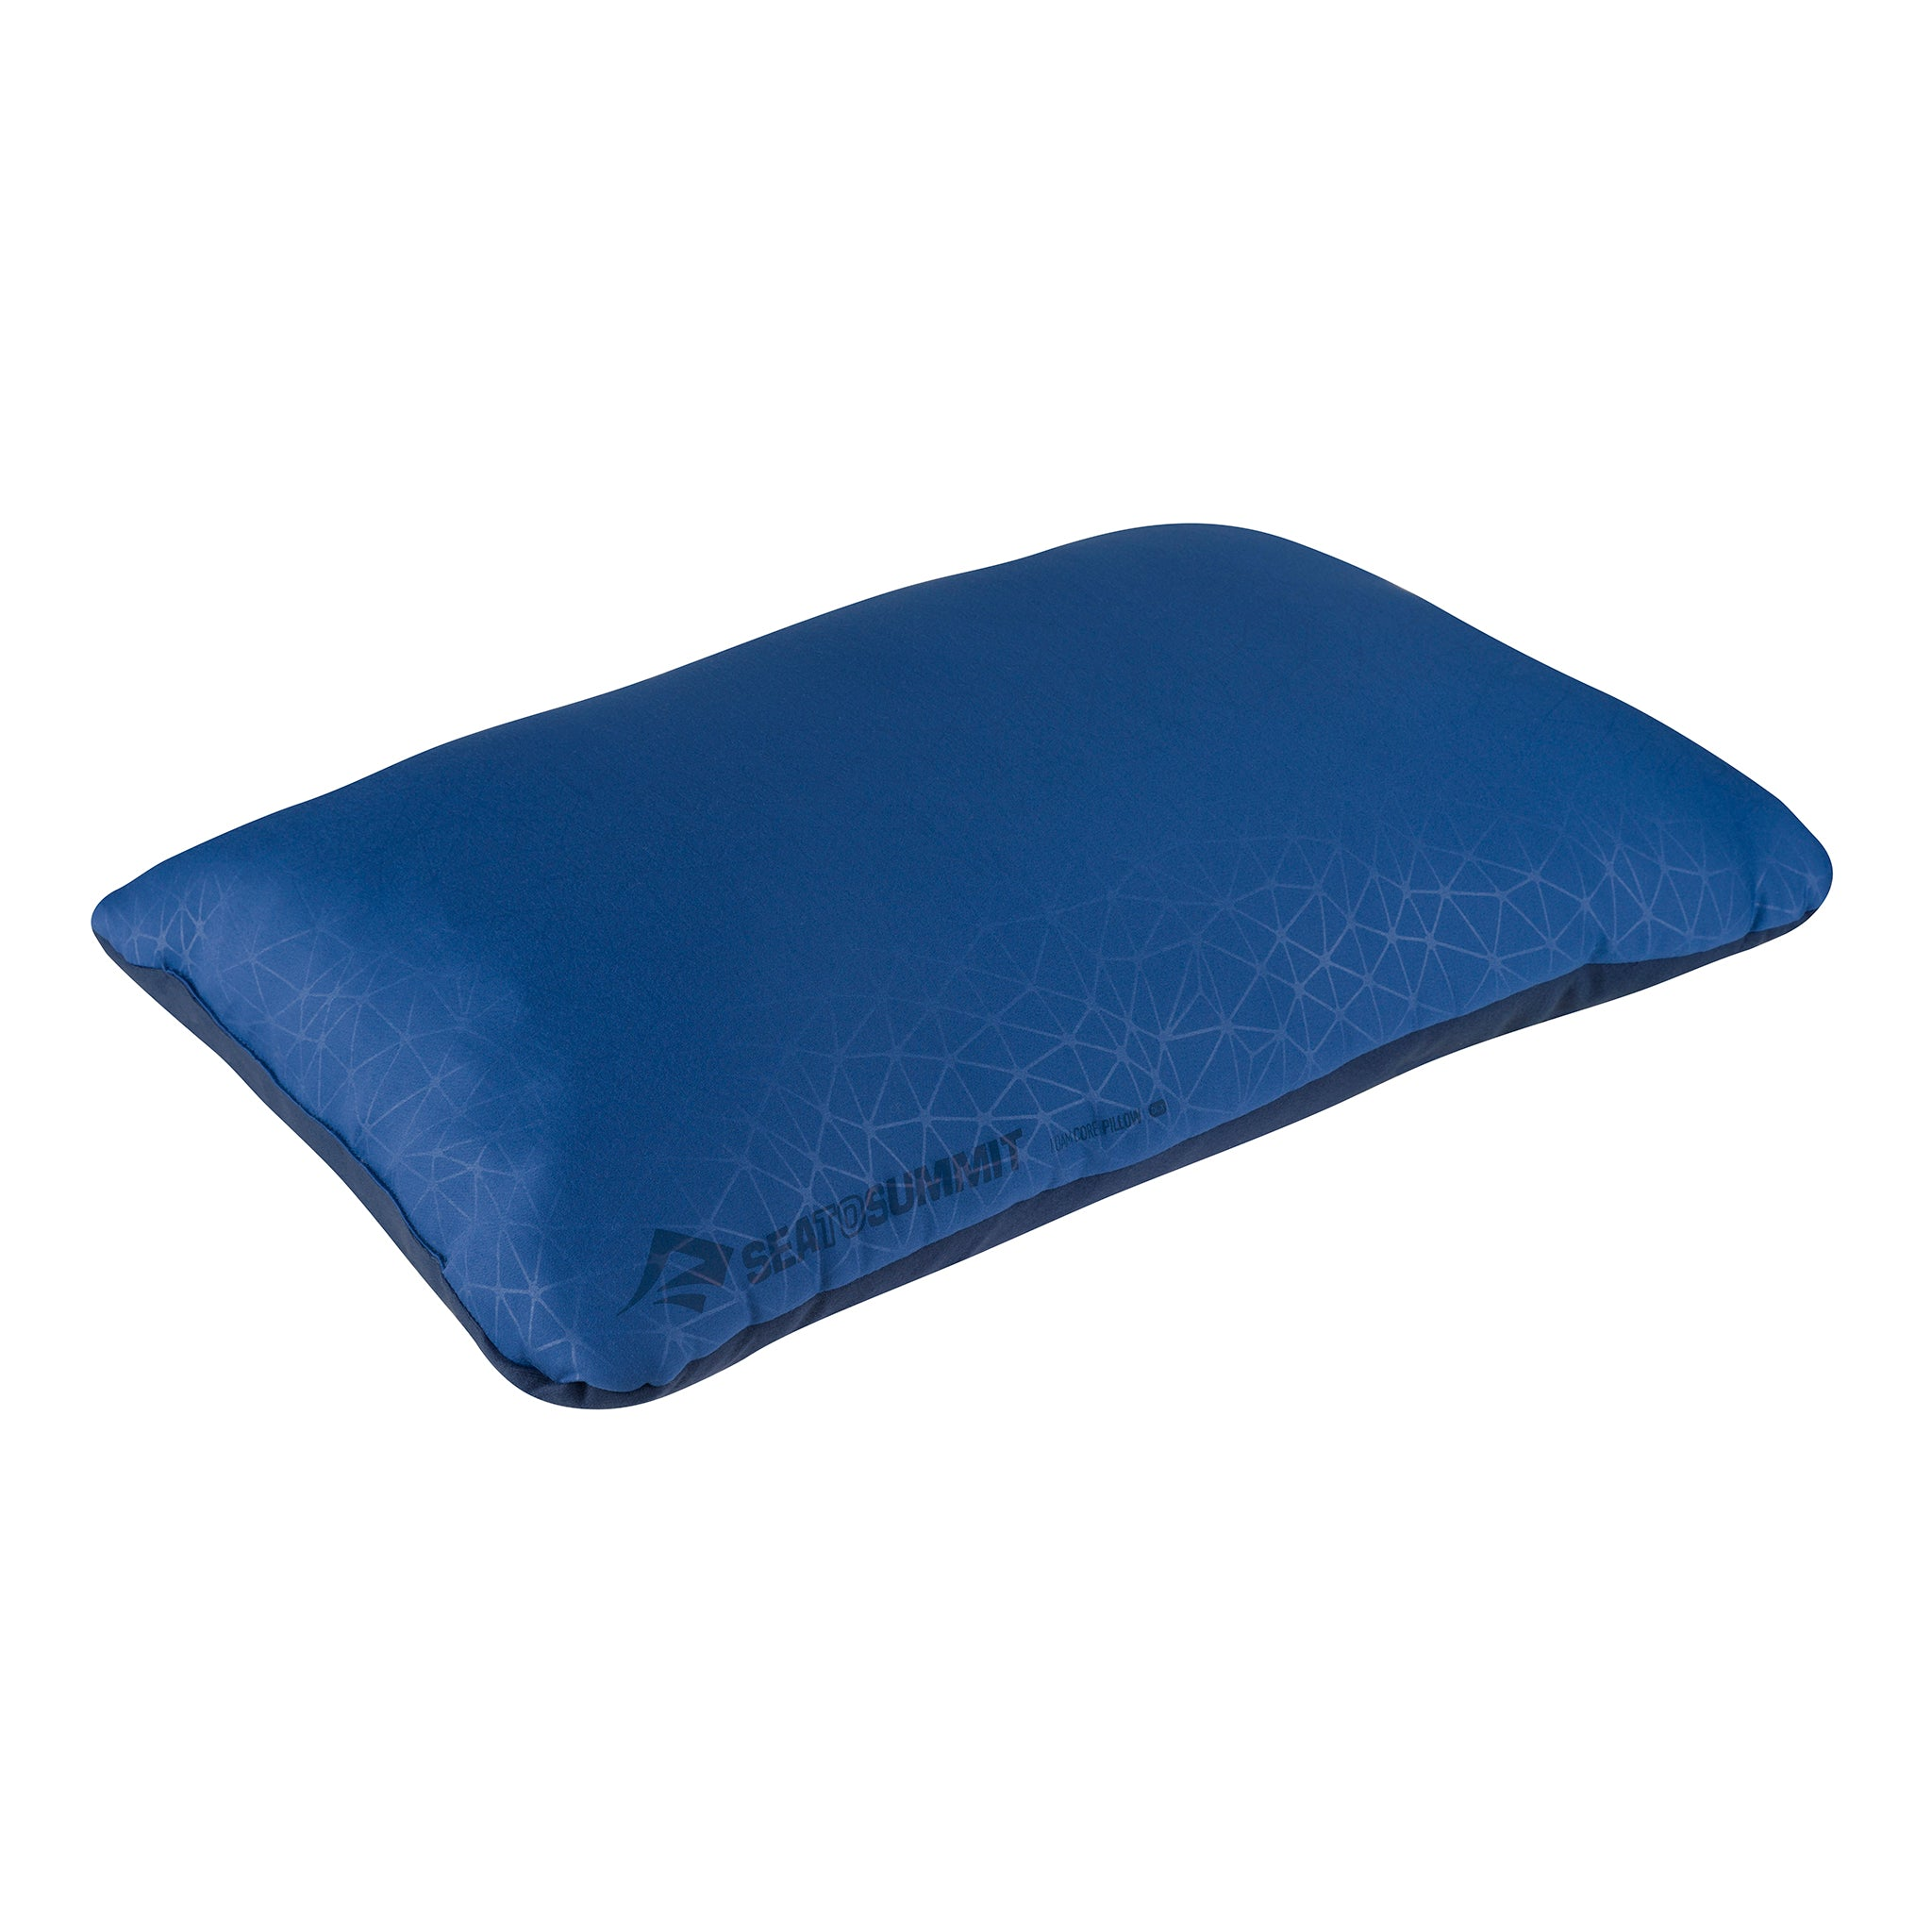 Foamcore Camping Pillow _ Navy Blue _ Full Size _ Deluxe